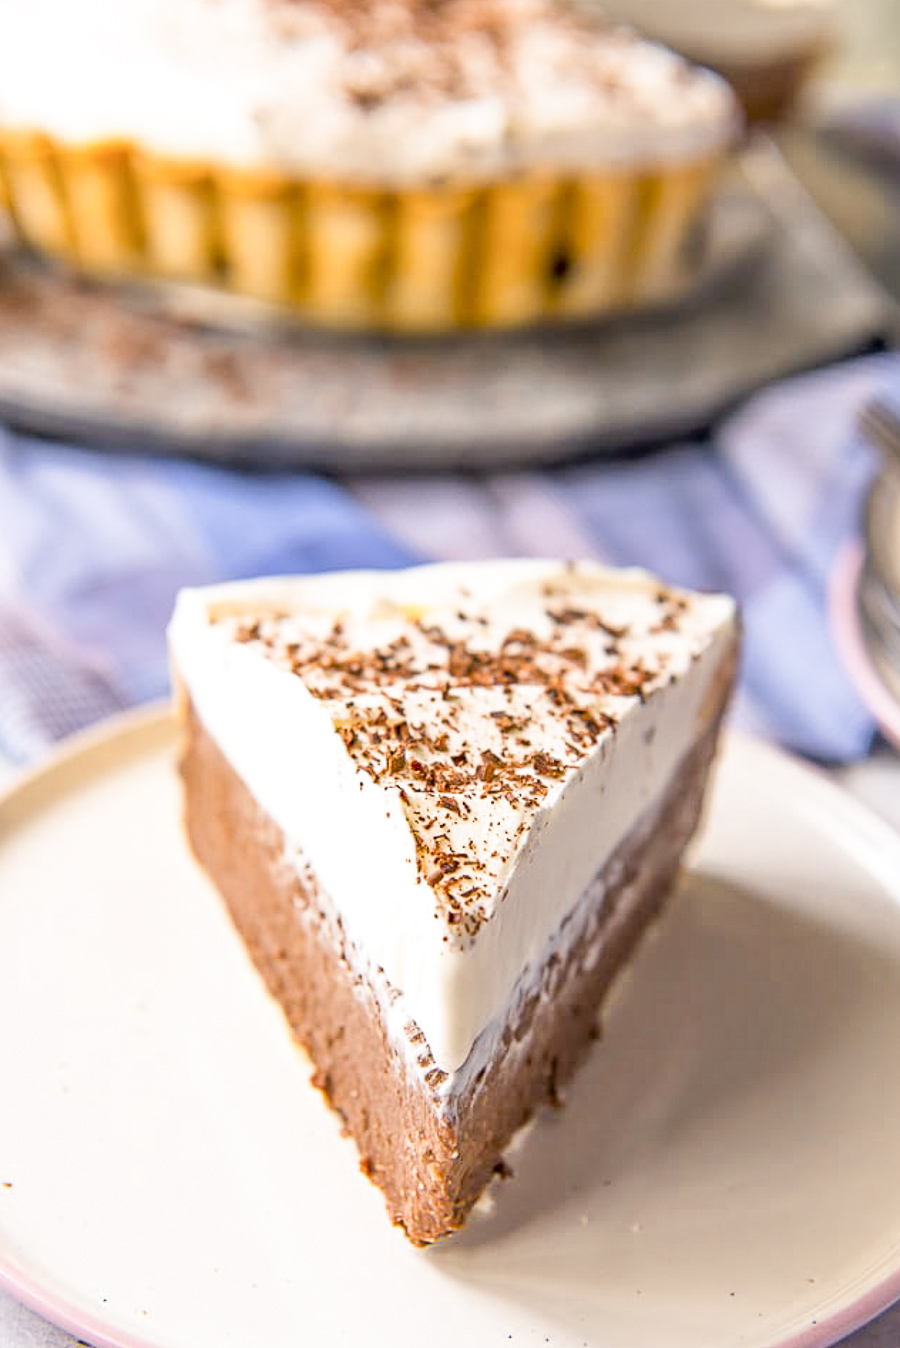 Creamy and luscious beyond belief, this is the ultimate old-fashioned Chocolate Cream Pie recipe! Whether you make your own crust or take it easy with a store-bought one, the rich filling and fluffy whipped cream on top will make this a dessert worth repeating.